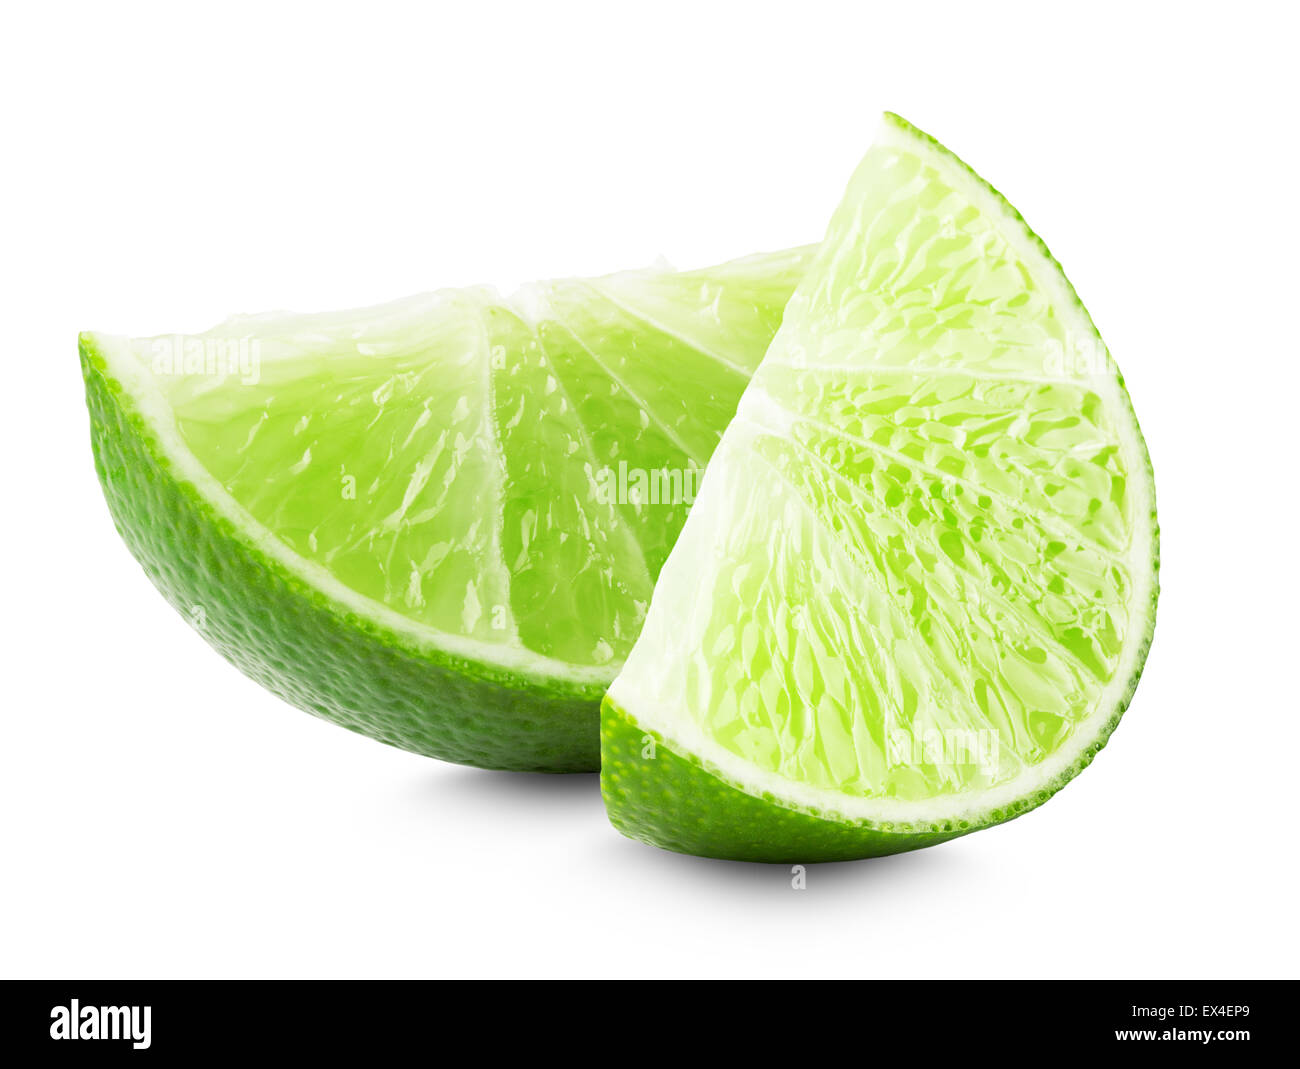 lime slices isolated on white background. - Stock Image